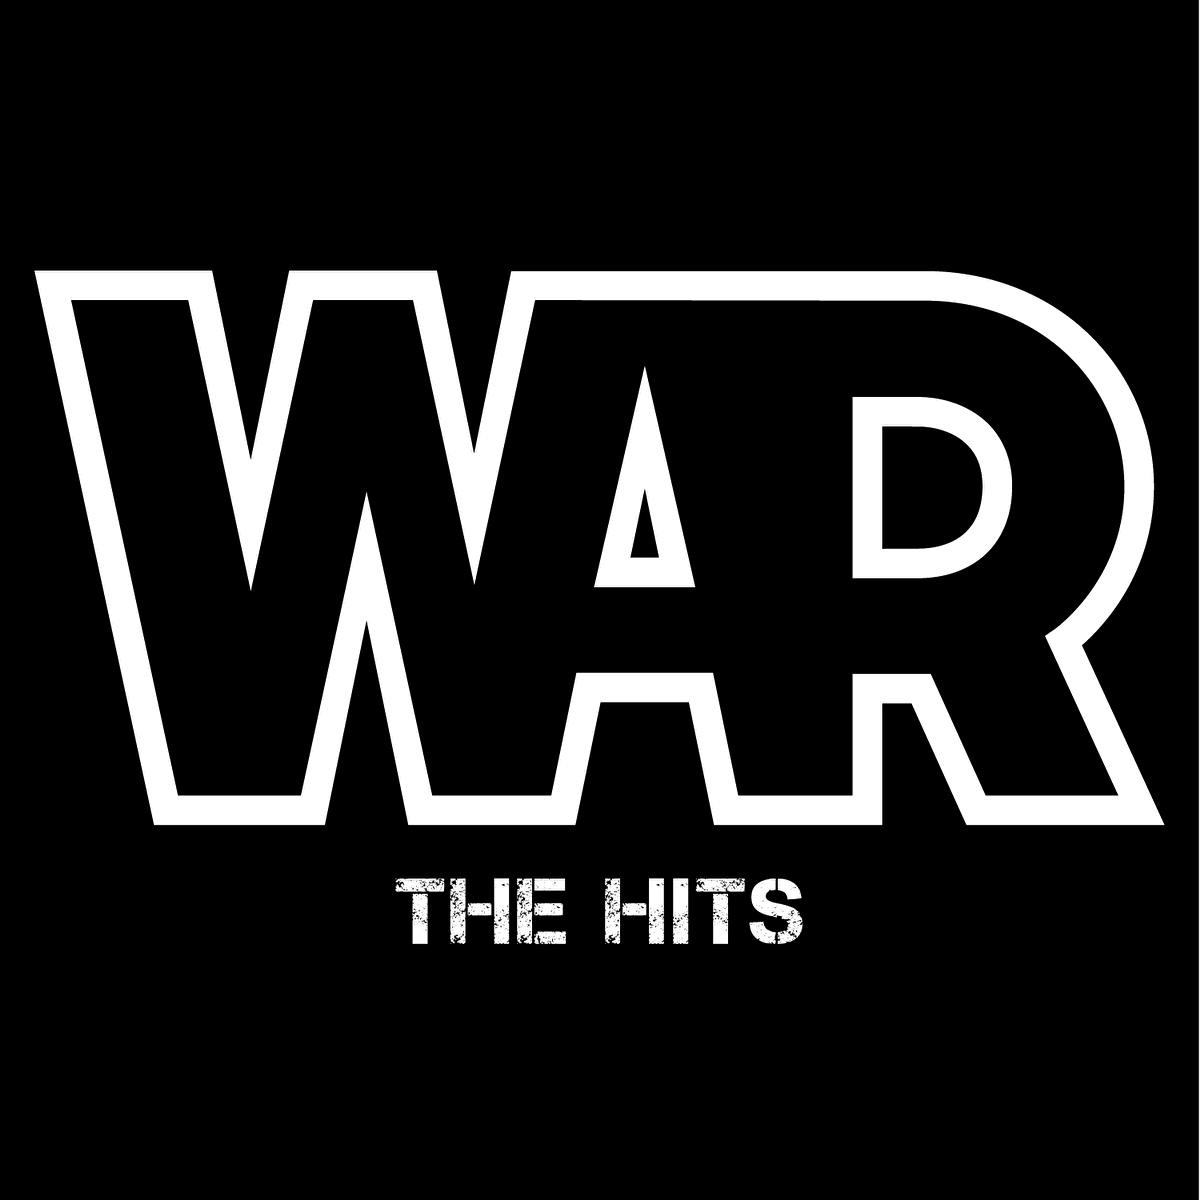 The Hits War CD cover